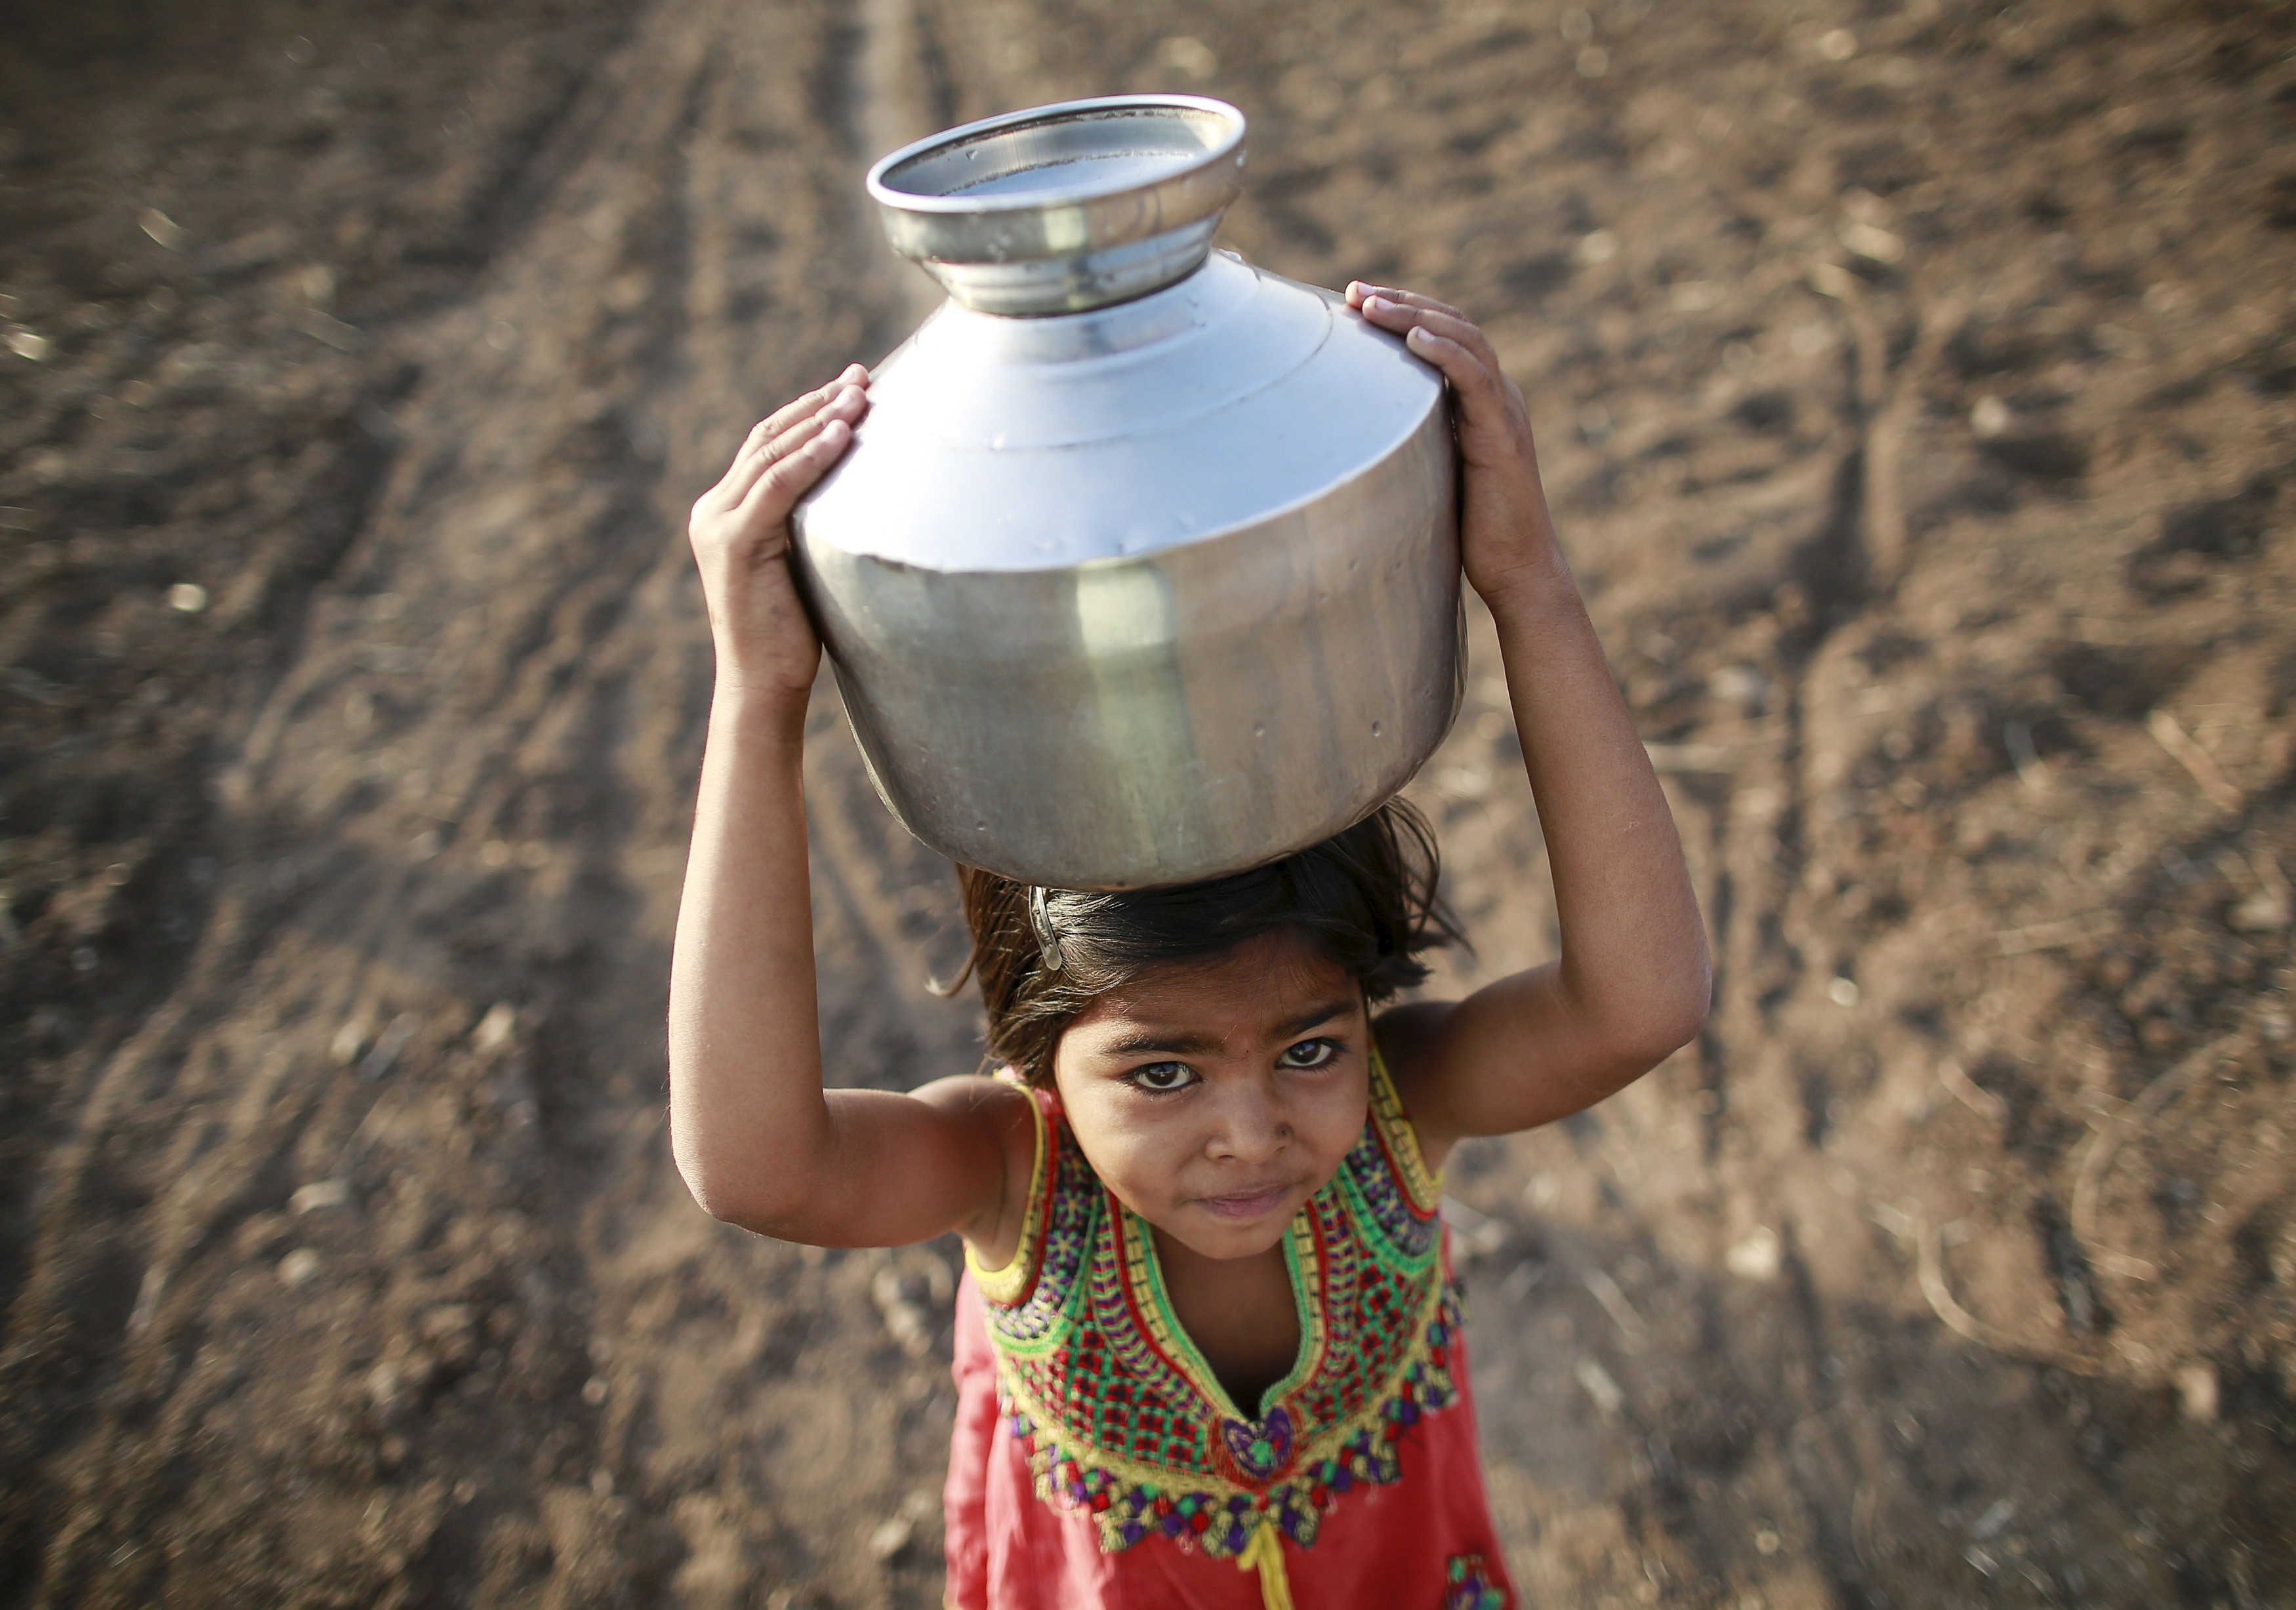 A girl carries a metal pitcher filled with water through a field in Latur